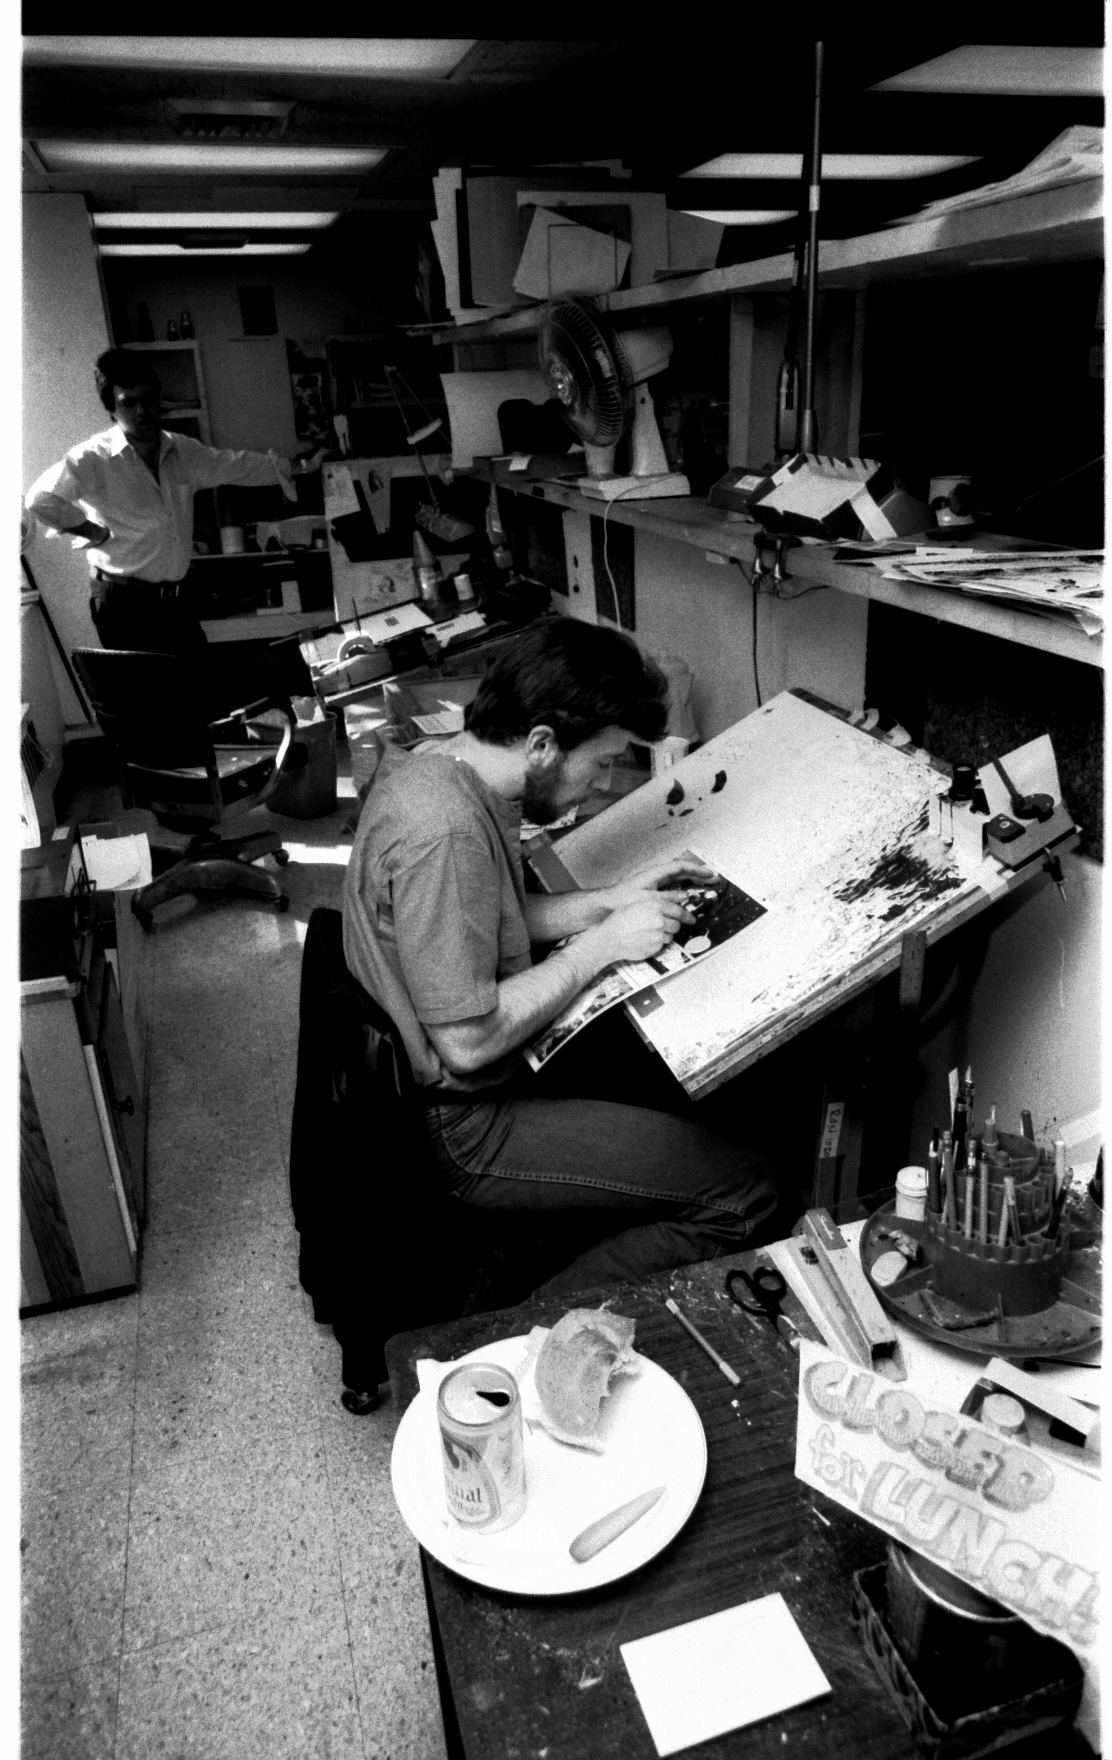 Work never stopped! Despite a small party, artist Bill Sienkiewicz uses Ron Zalme's desk to do some quick fixes. Robbie Carosella looks on.